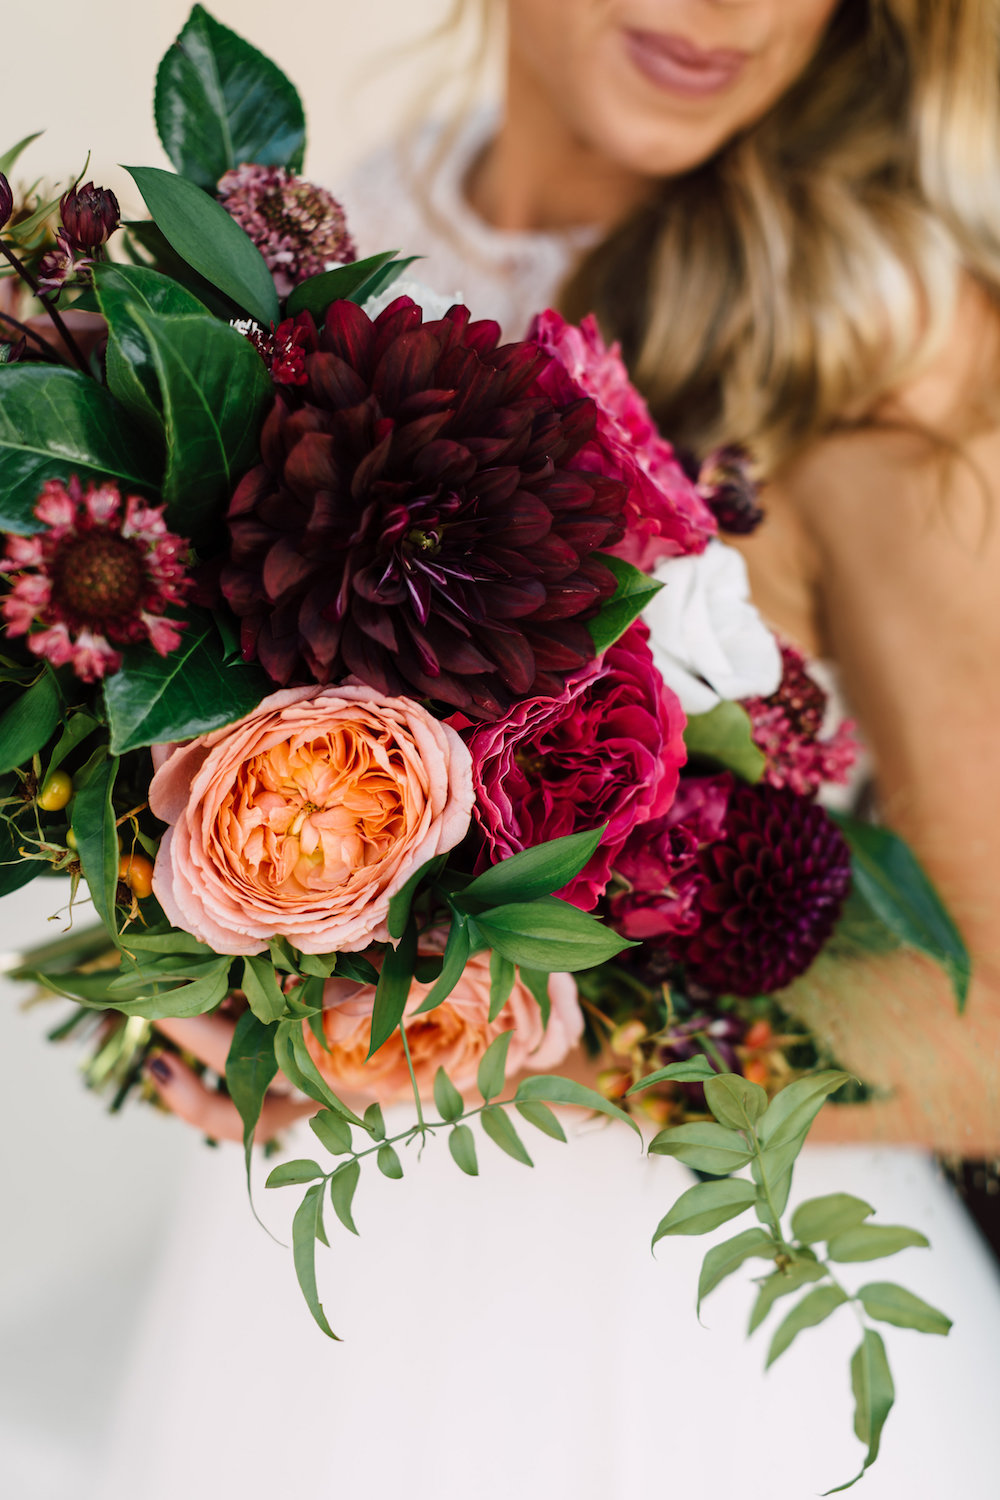 Classic, modern jewel tone bridal bouquet by Compass Floral. Venue: The Darlington House, La Jolla. Photographer: Plum & Oak